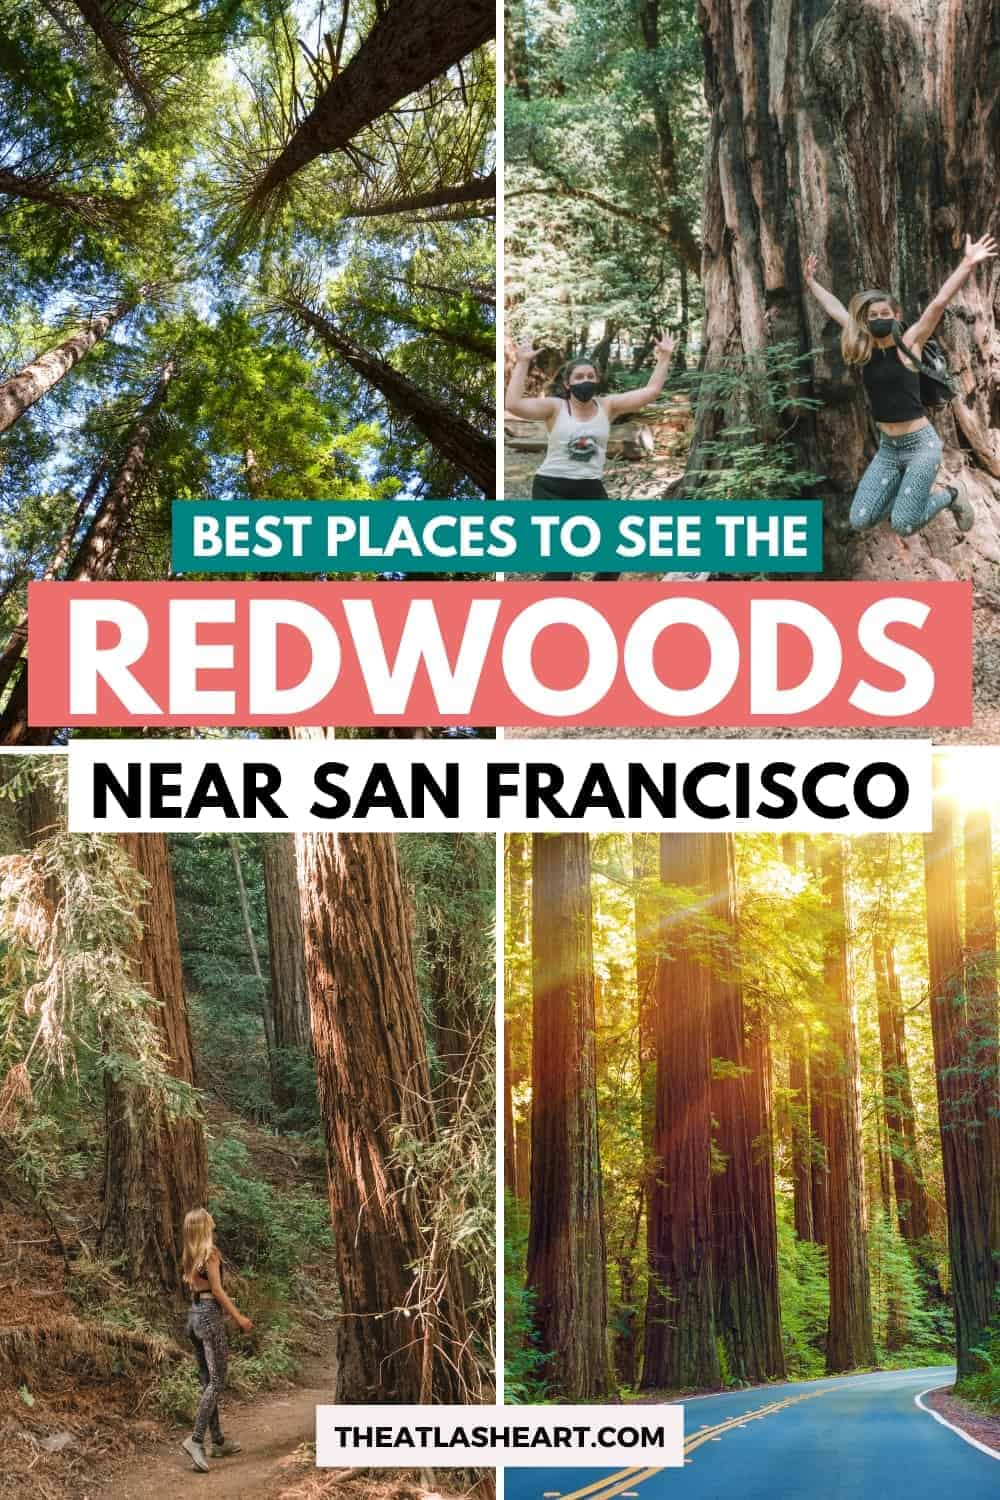 9 Places to See Redwoods Near San Francisco (Local\'s Guide)